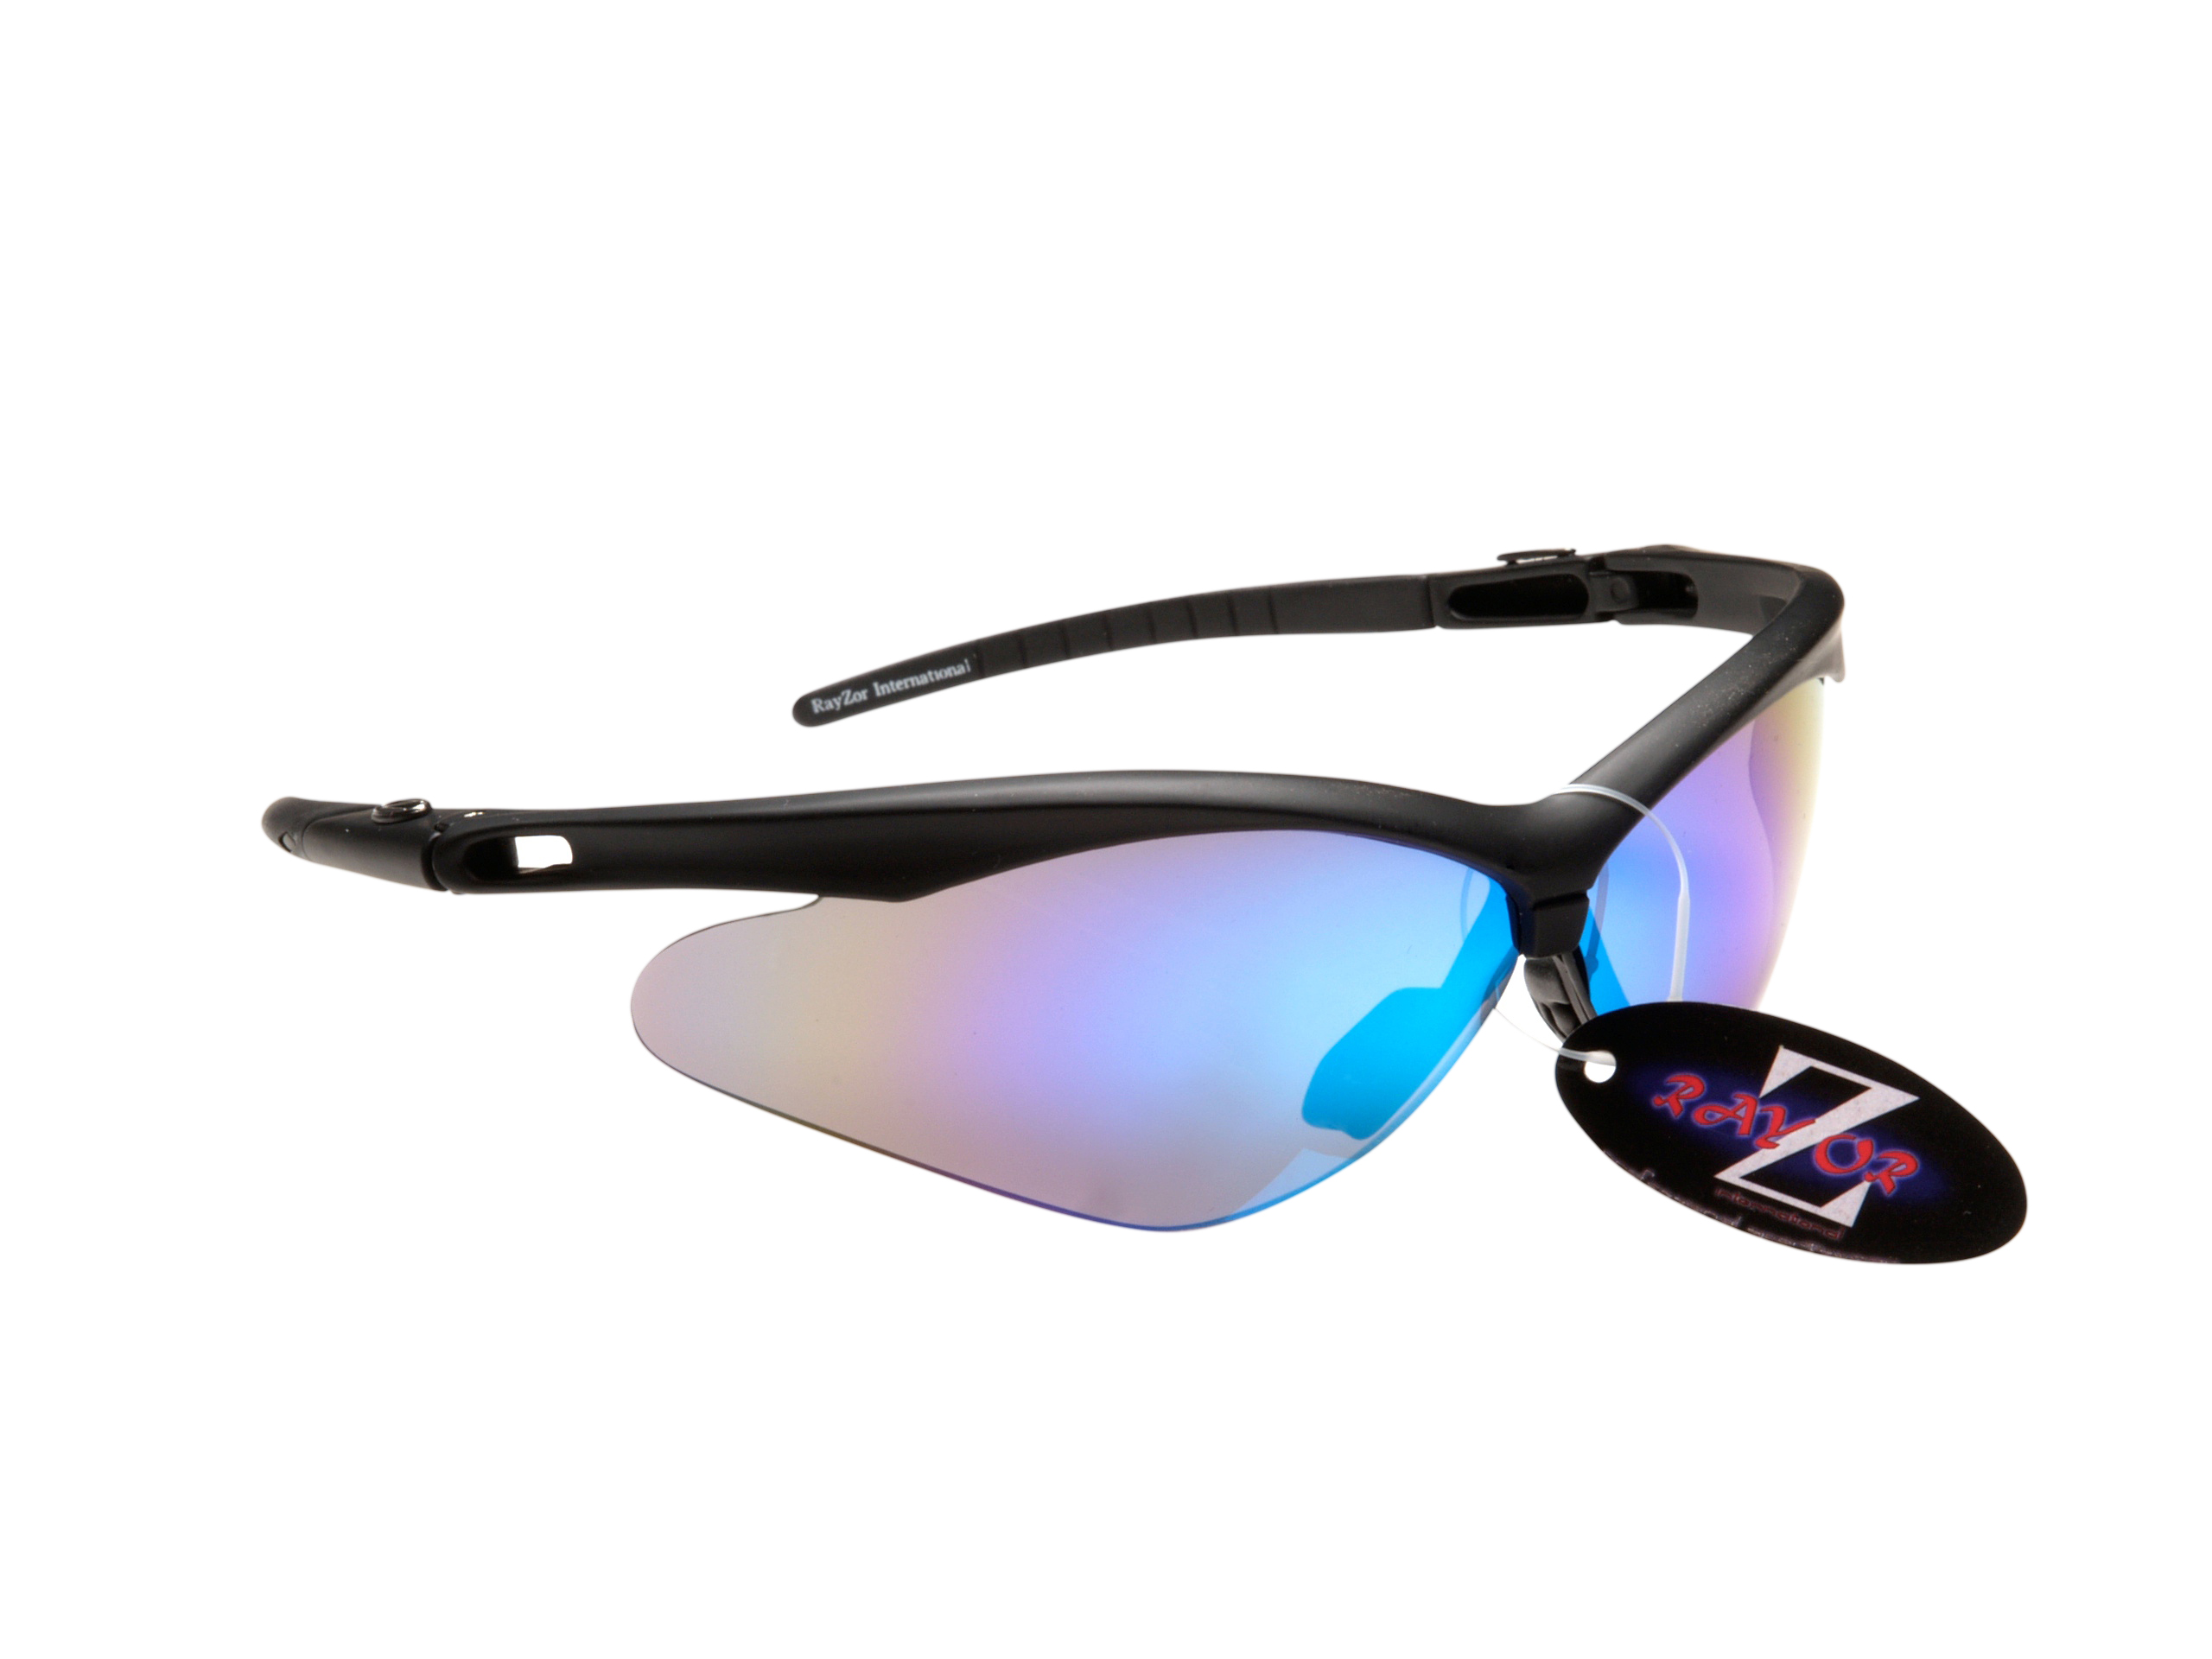 WINDSHIELDZ: RAYZOR BLACK FRAMED SPORTS SUNGLASSES WITH A BLUE IRIDIUM MIRRORED ANTI GLARE LENS. - Click Image to Close